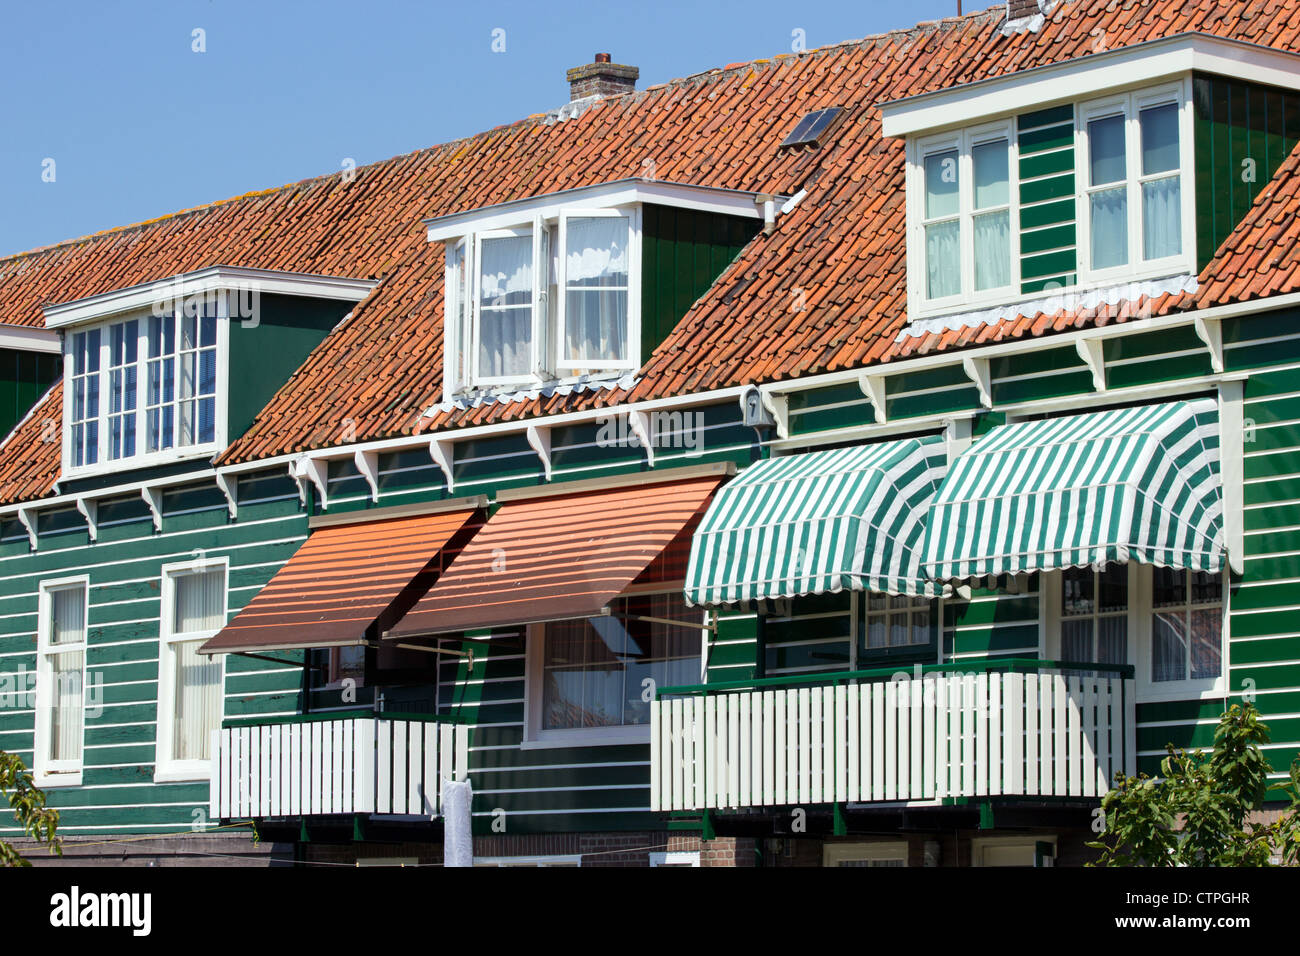 Houses in Marken, Holland - Stock Image